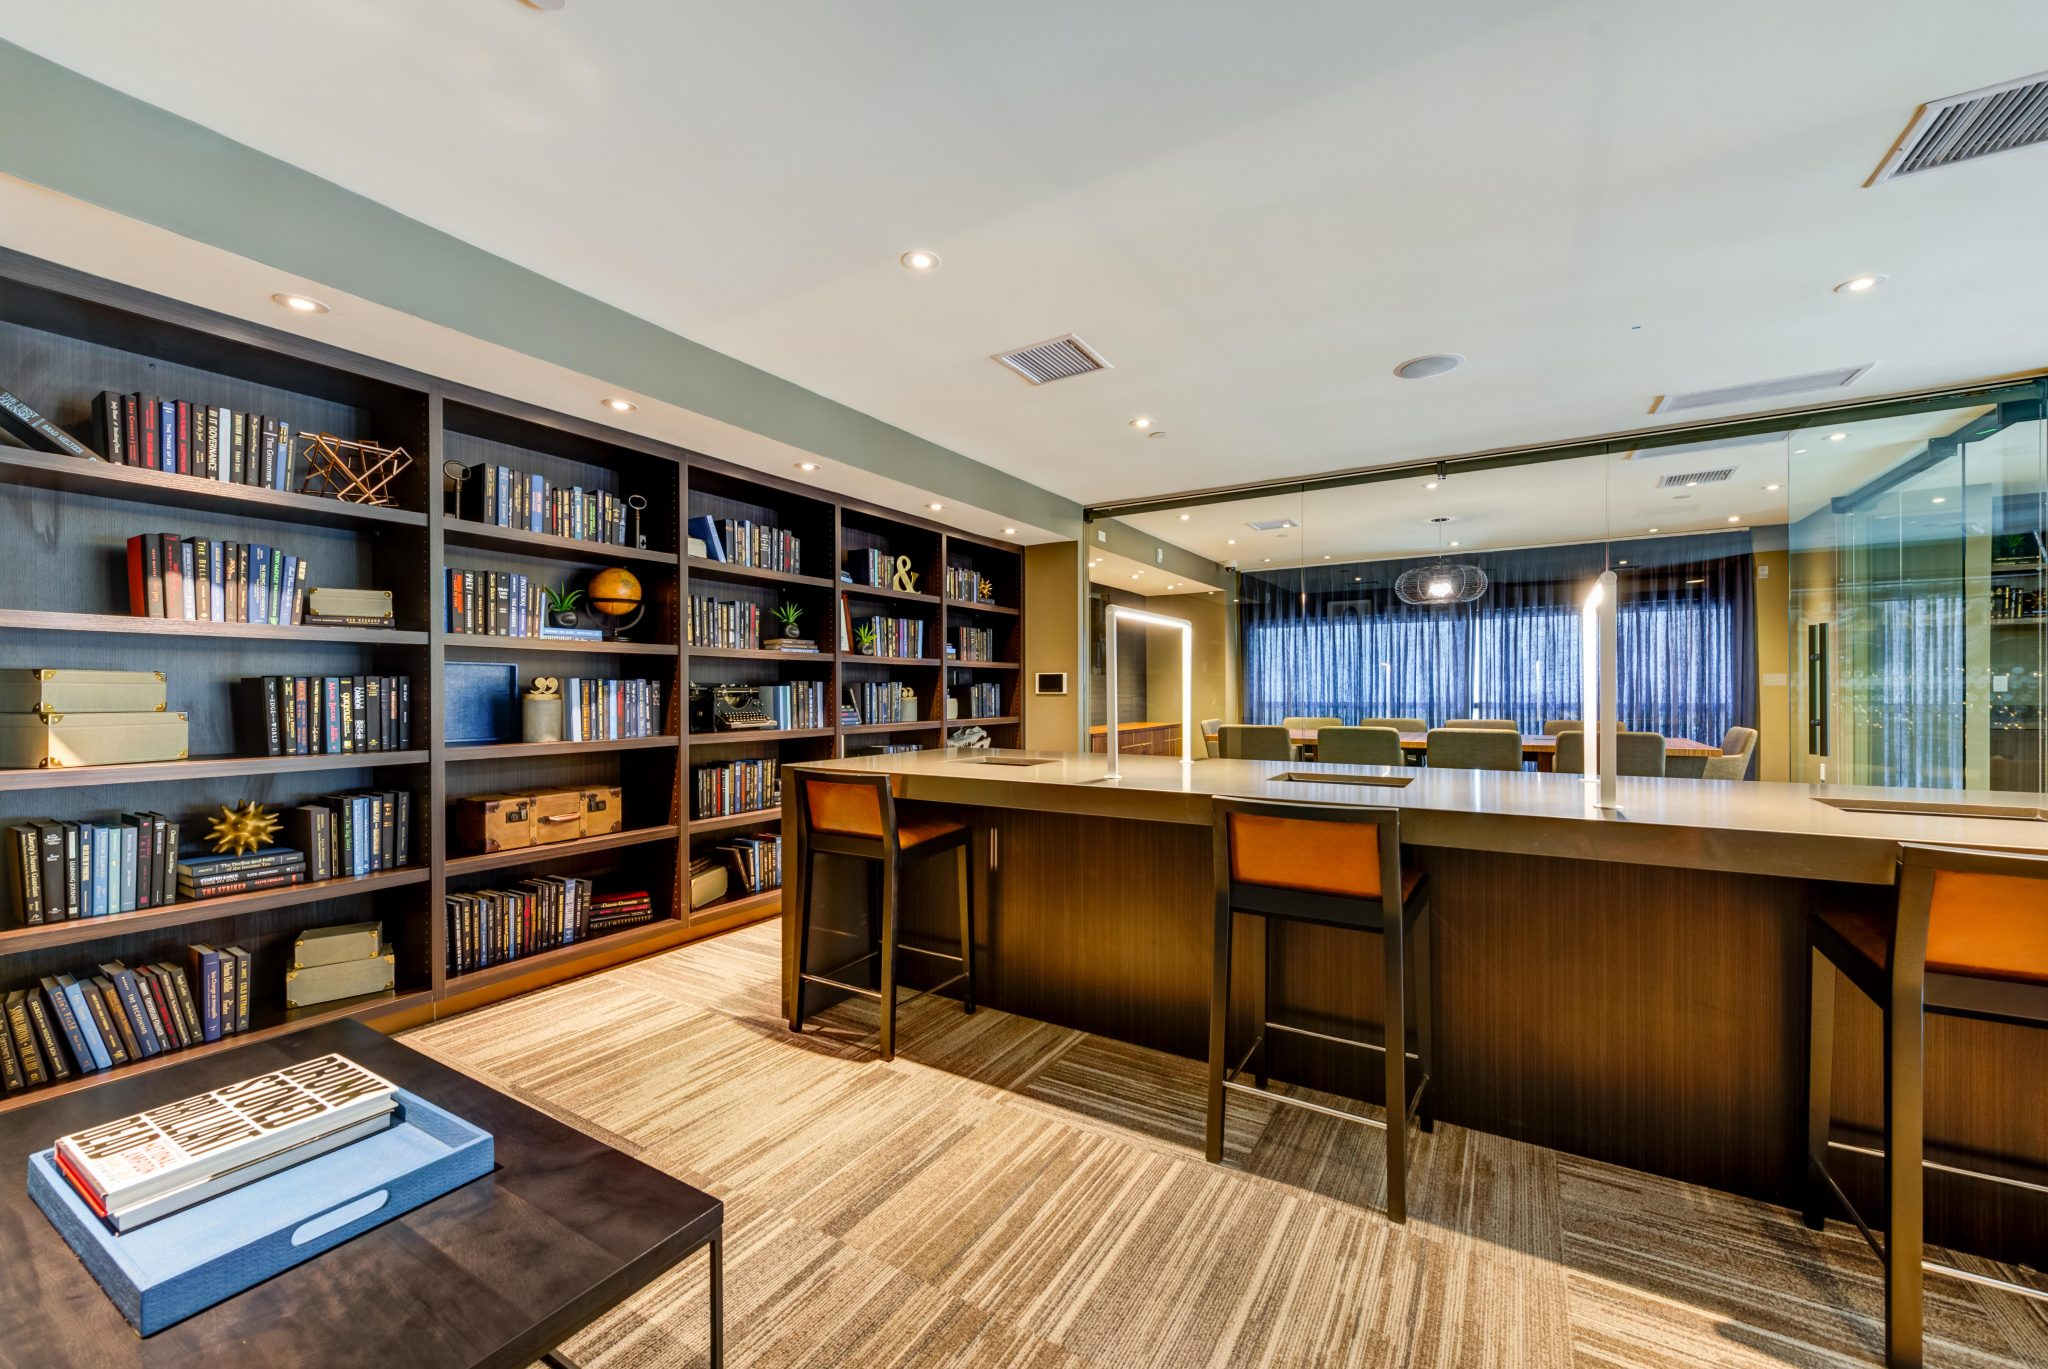 Interior of room with counter-height seating and book shelves